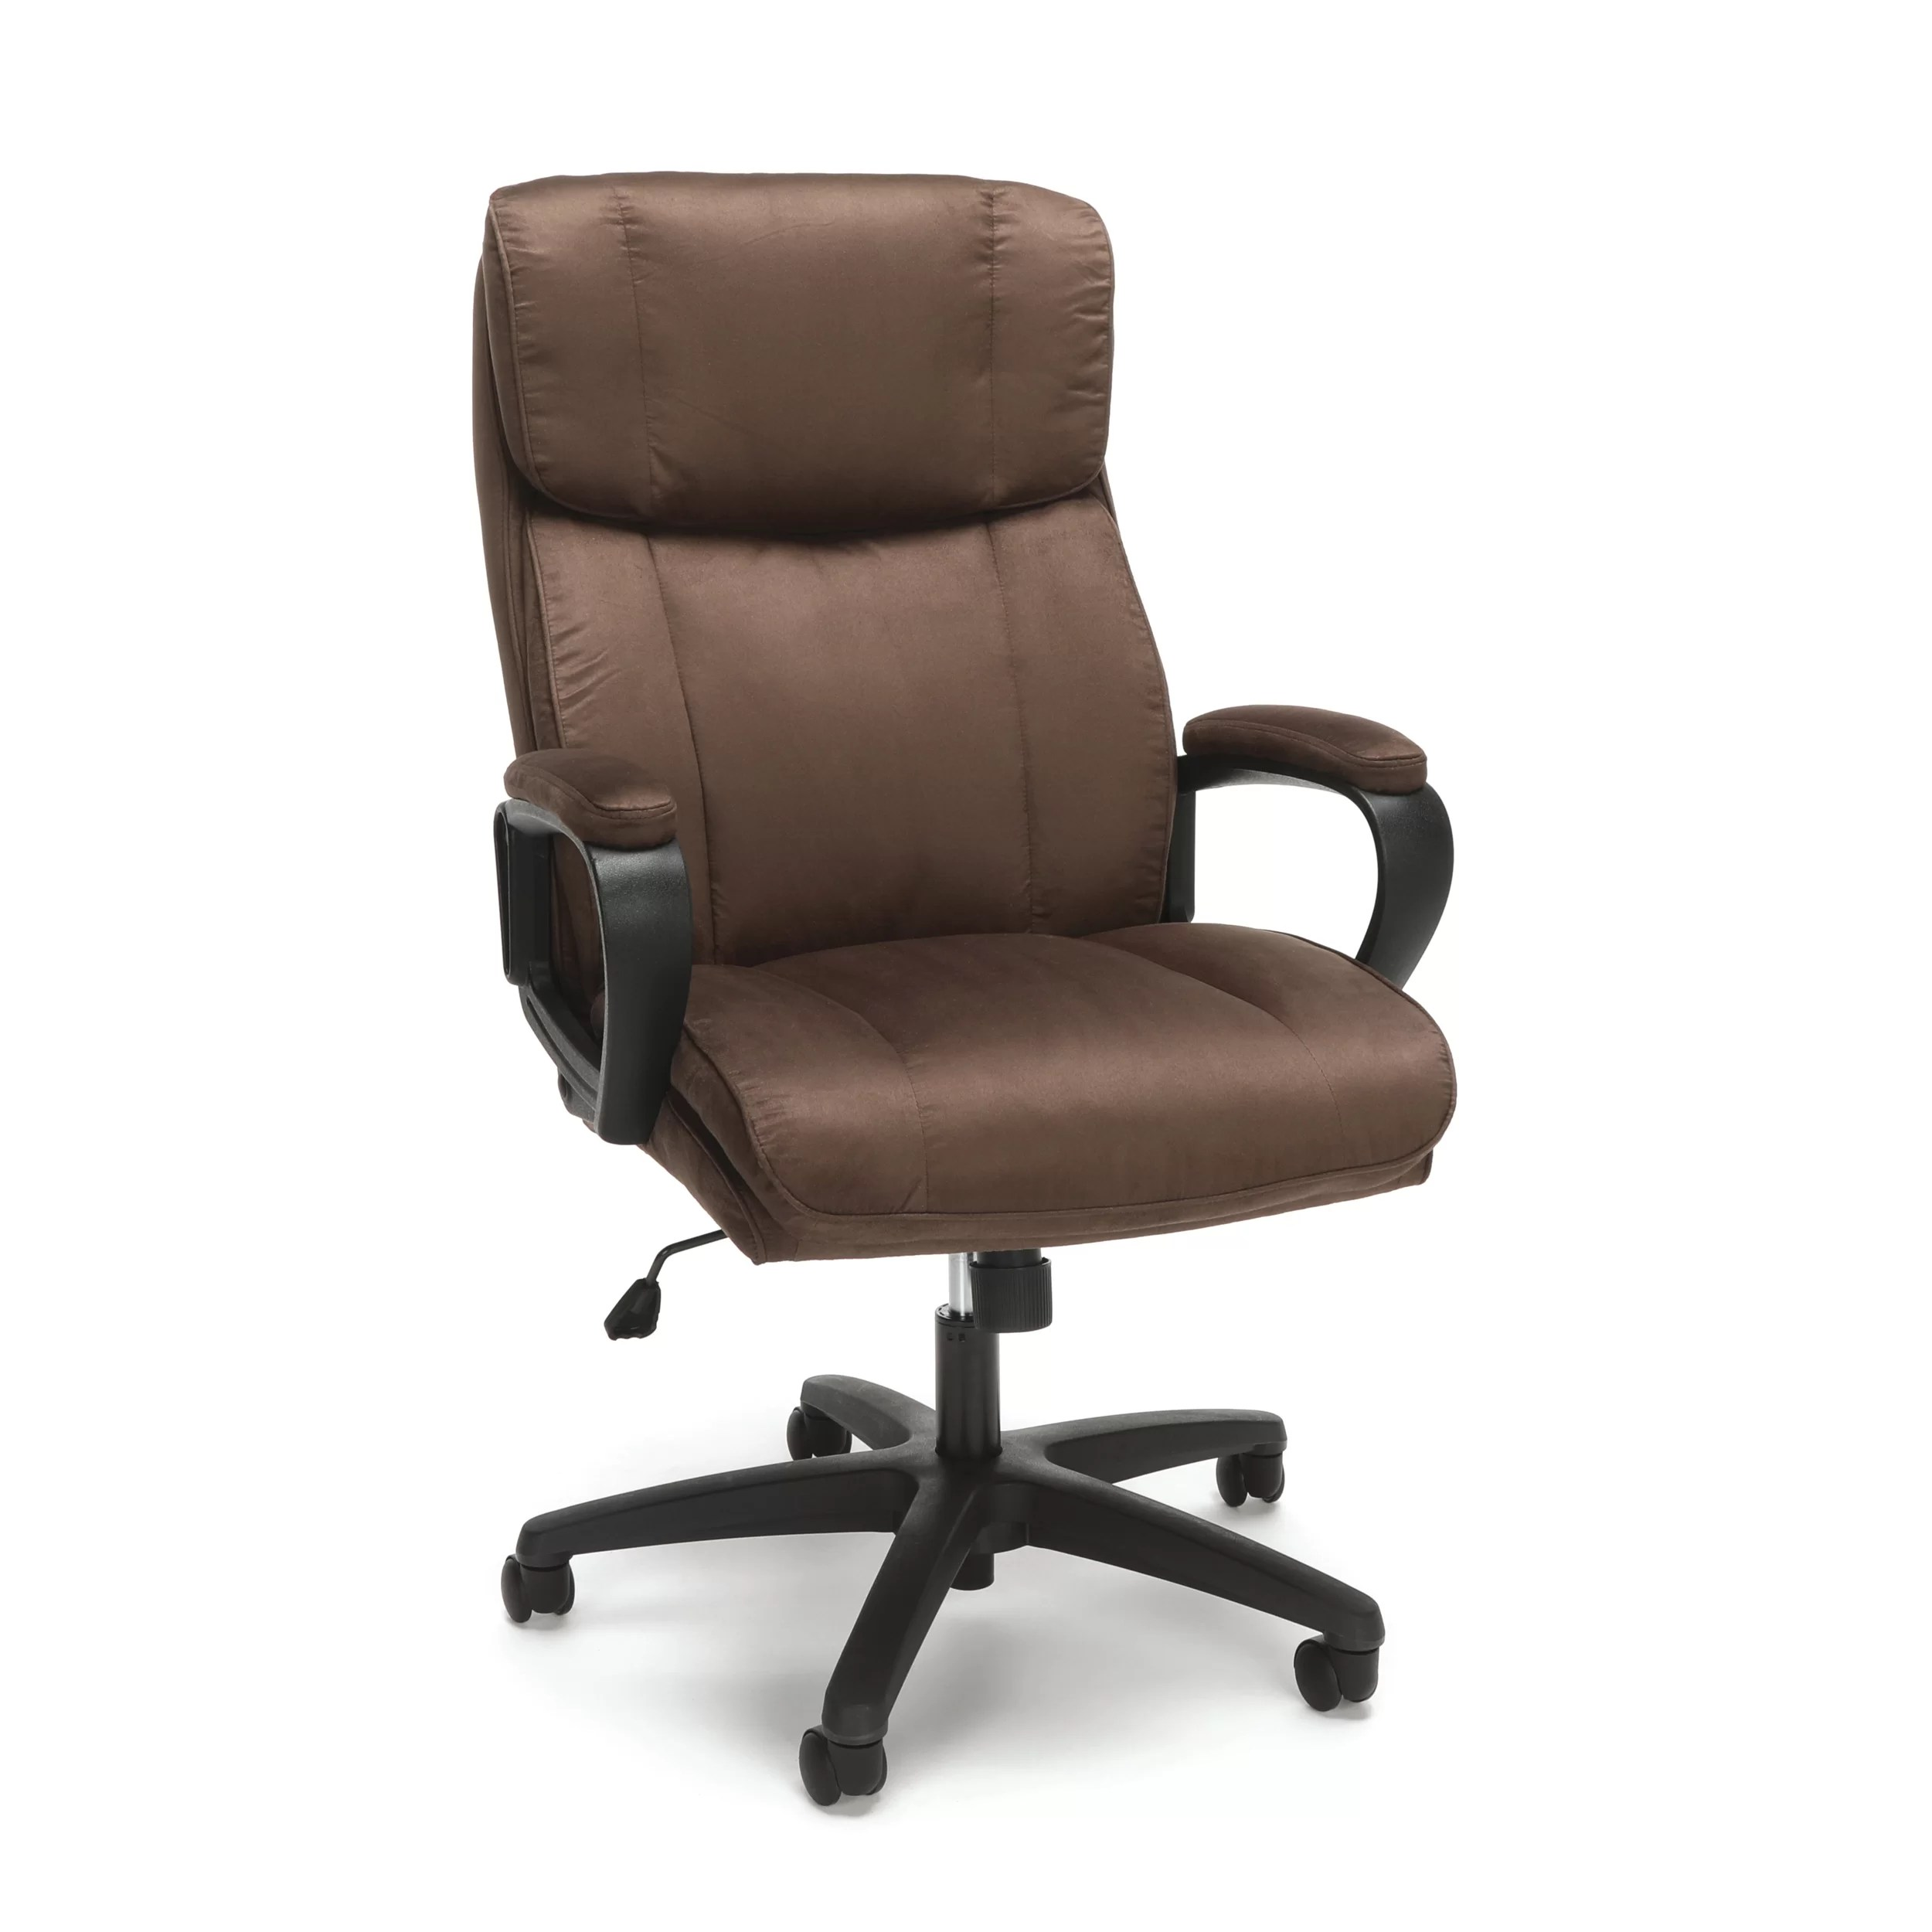 Office Chair Posture Digby Plush Ergonomic Office Chair